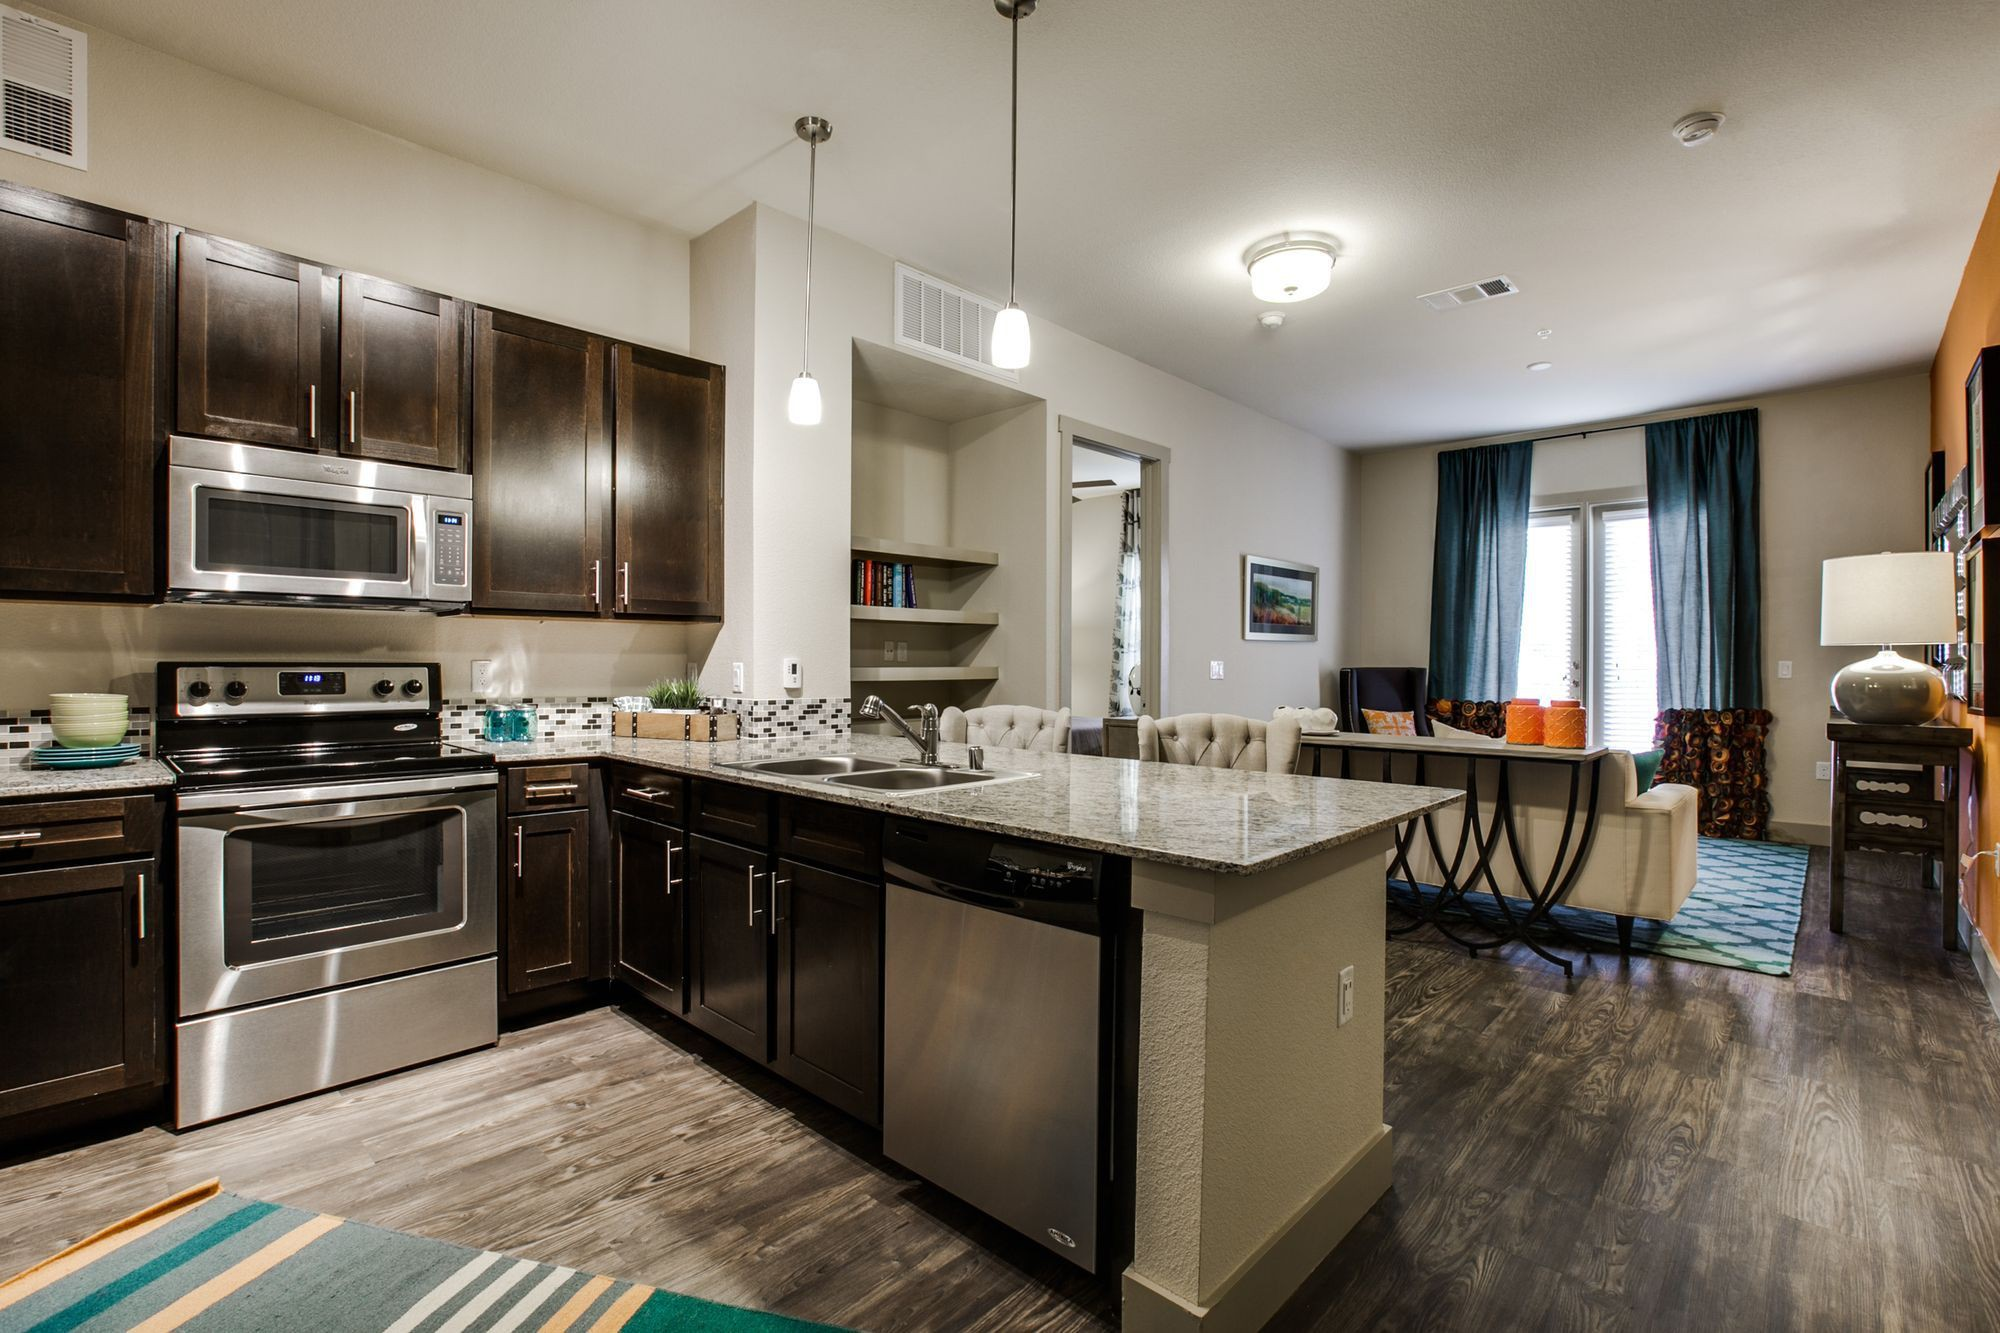 Apartments Near TCU Parkside So7 for Texas Christian University Students in Fort Worth, TX